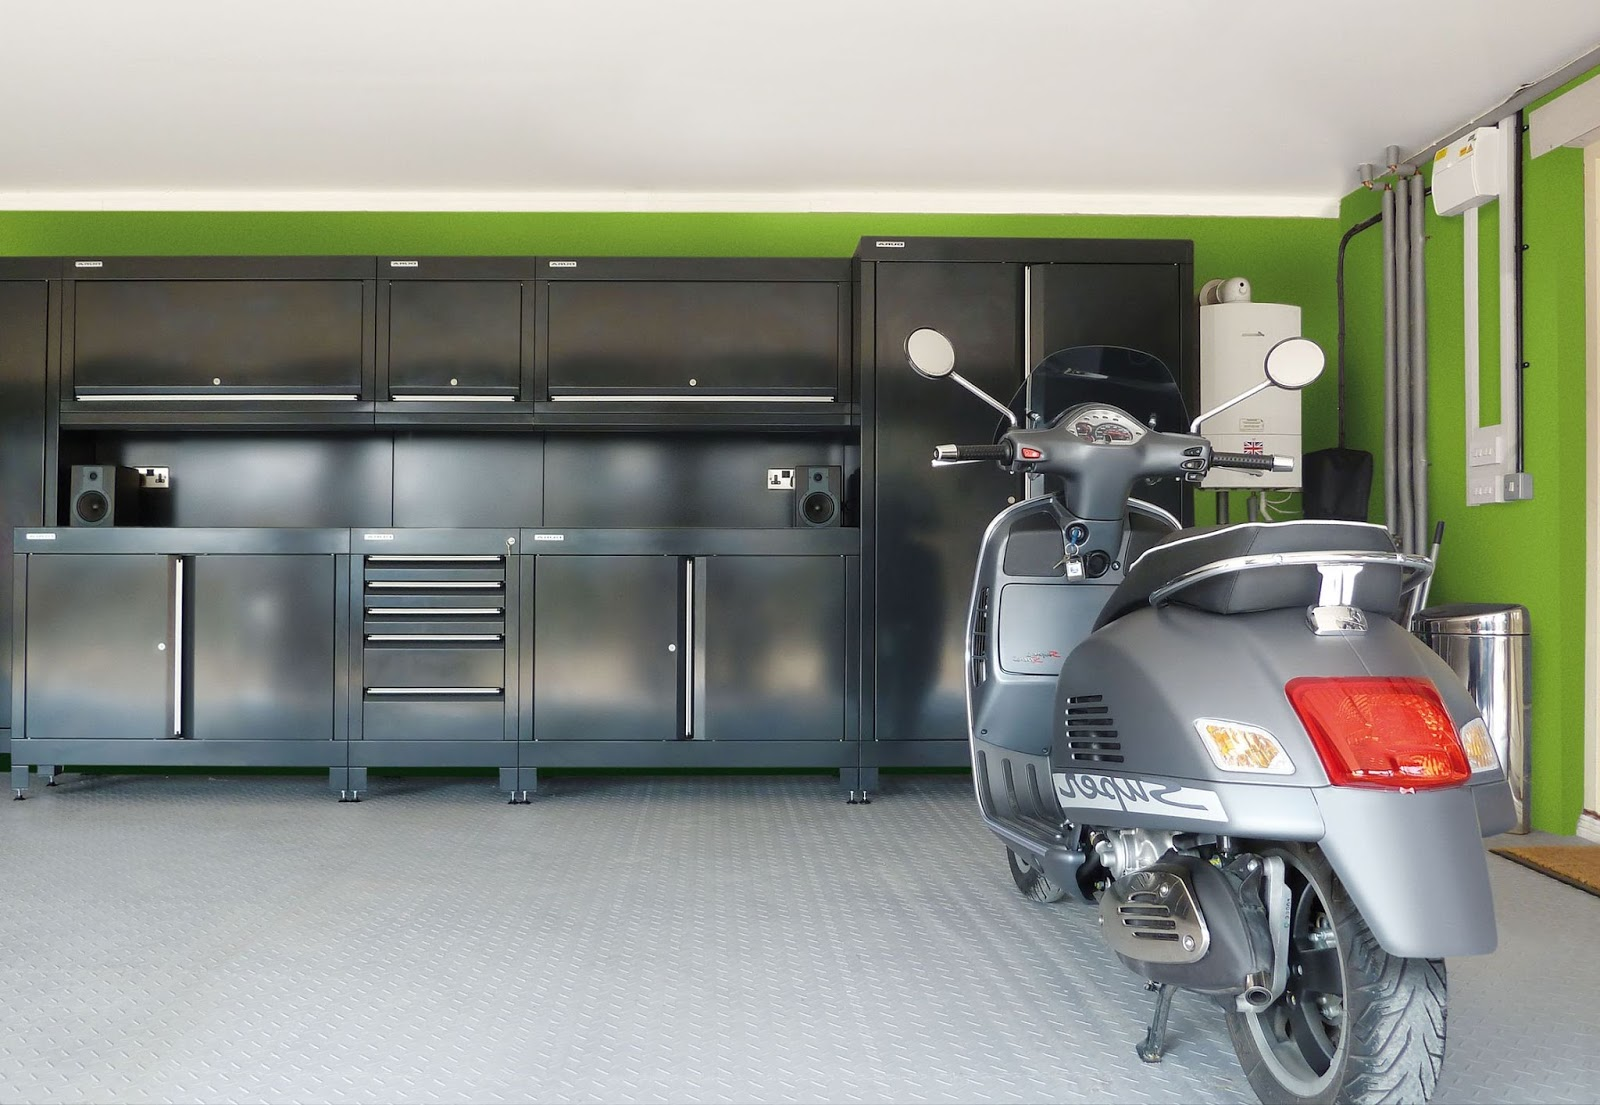 Uptown Real Estate Group: Make Your Garage Spectacular! on Garage Colors Ideas  id=13993